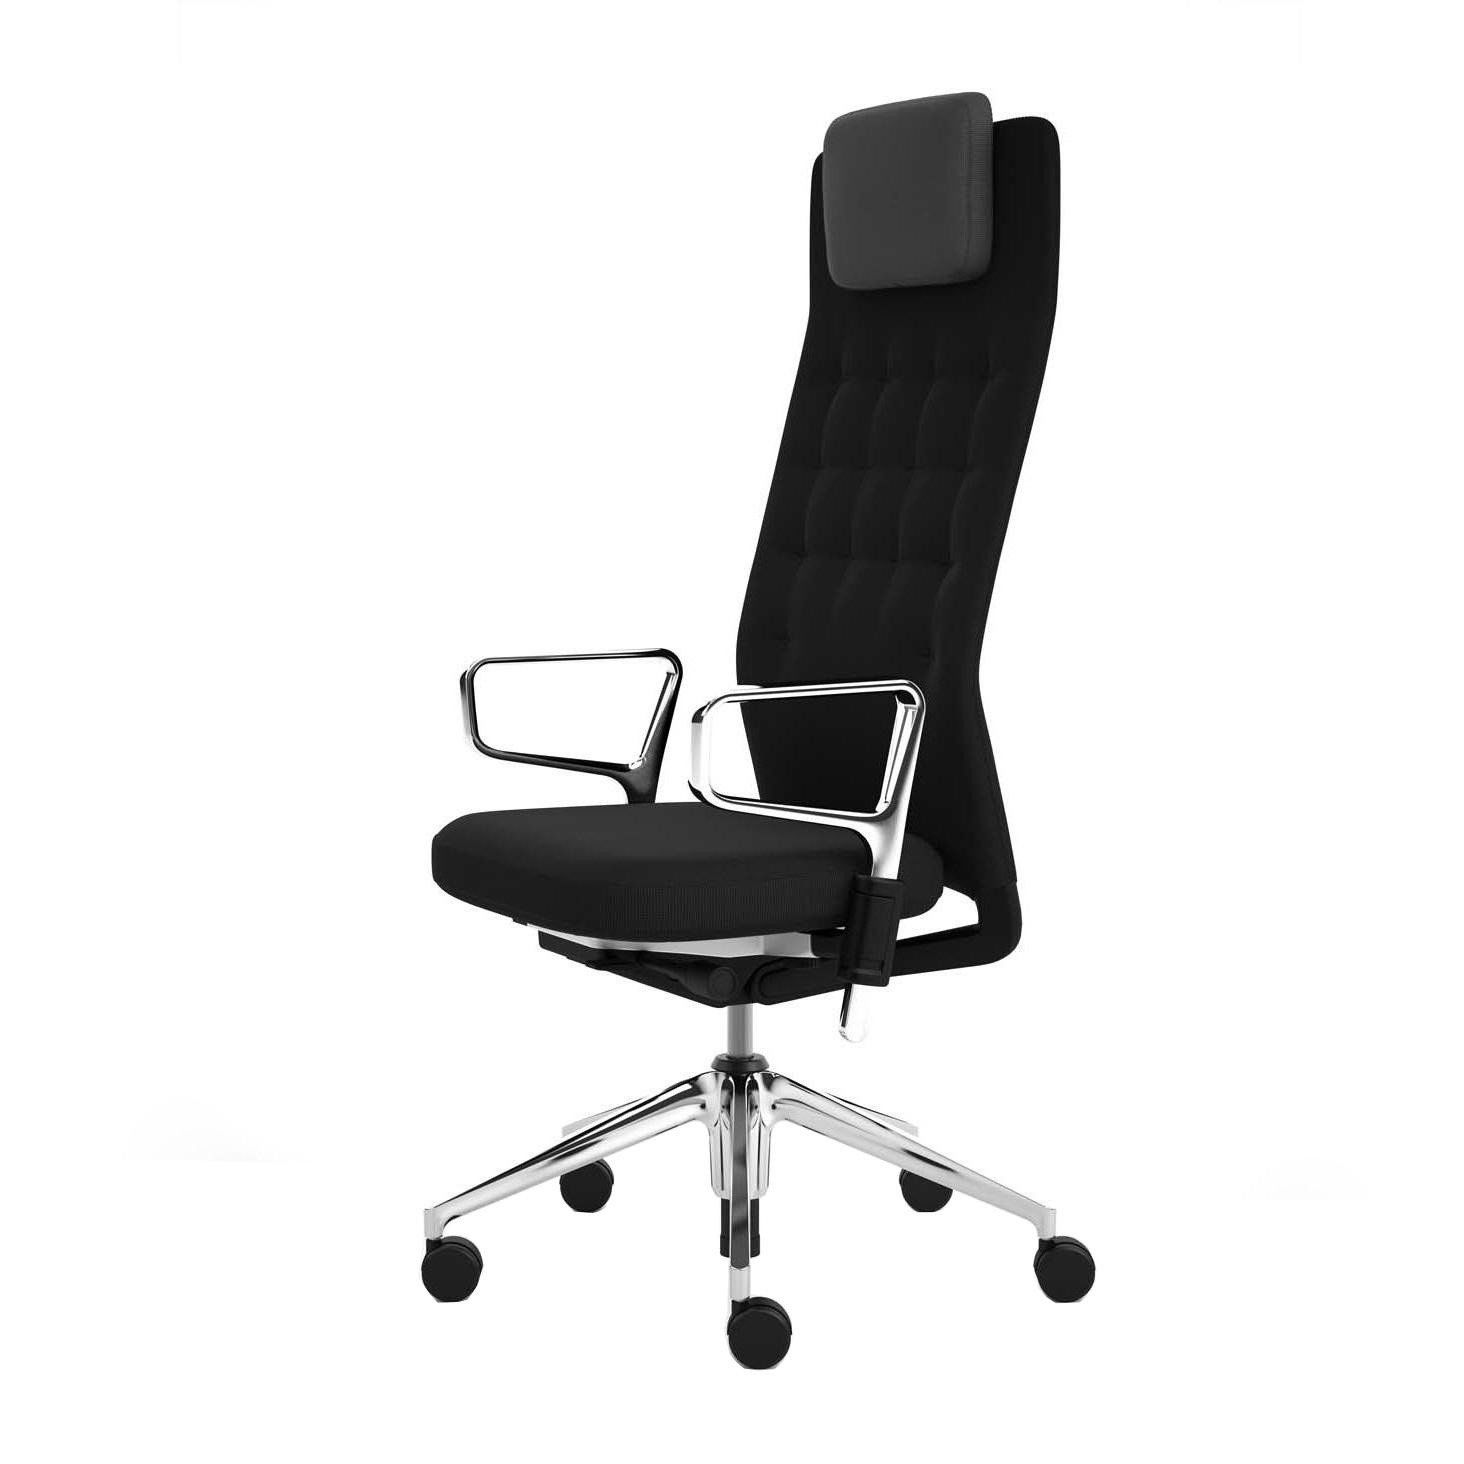 id trim l citterio office chair ring armrests vitra. Black Bedroom Furniture Sets. Home Design Ideas